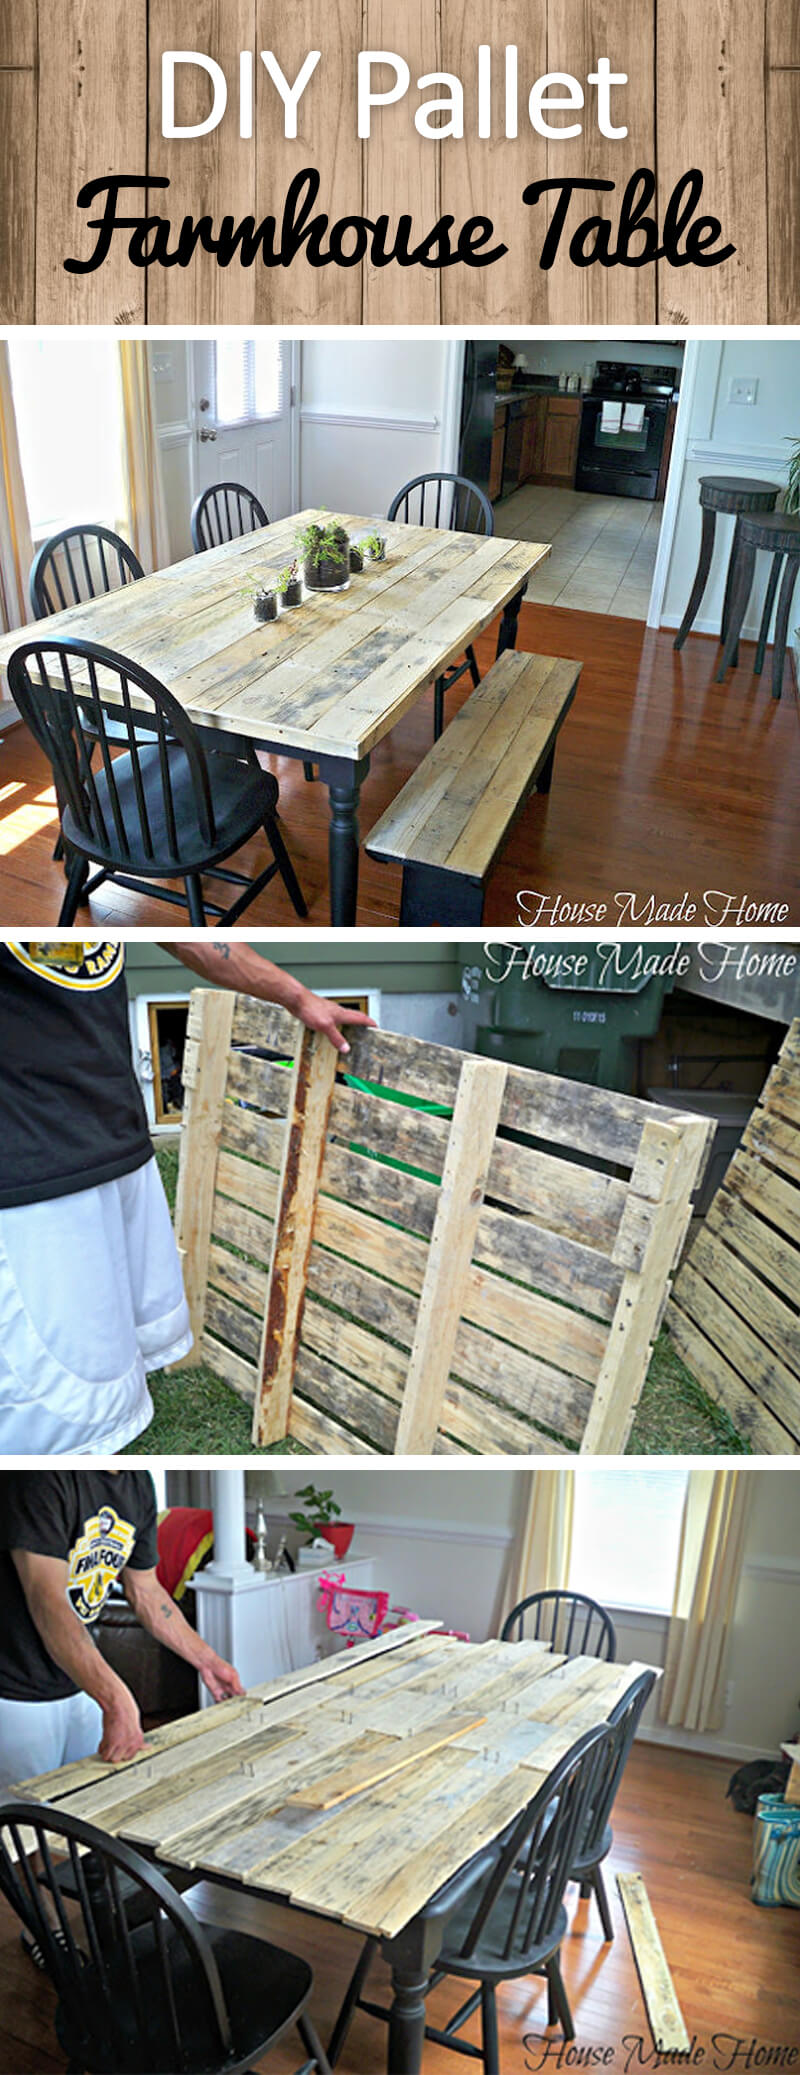 3 Best Rustic DIY Farmhouse Table Ideas and Designs for 3